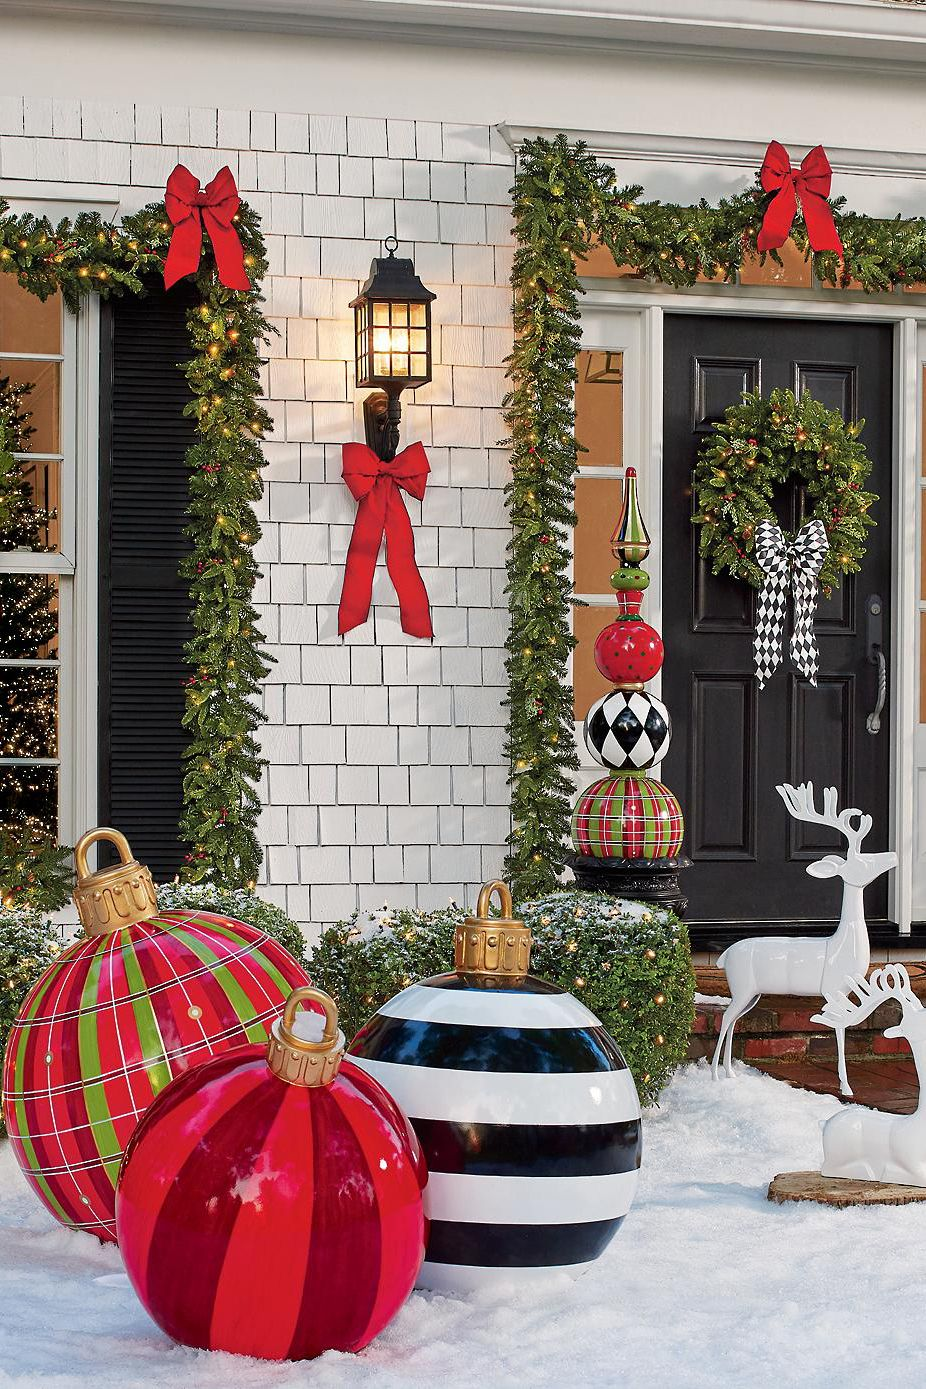 Large Outdoor Christmas Ornaments  Giant Holiday Ornament